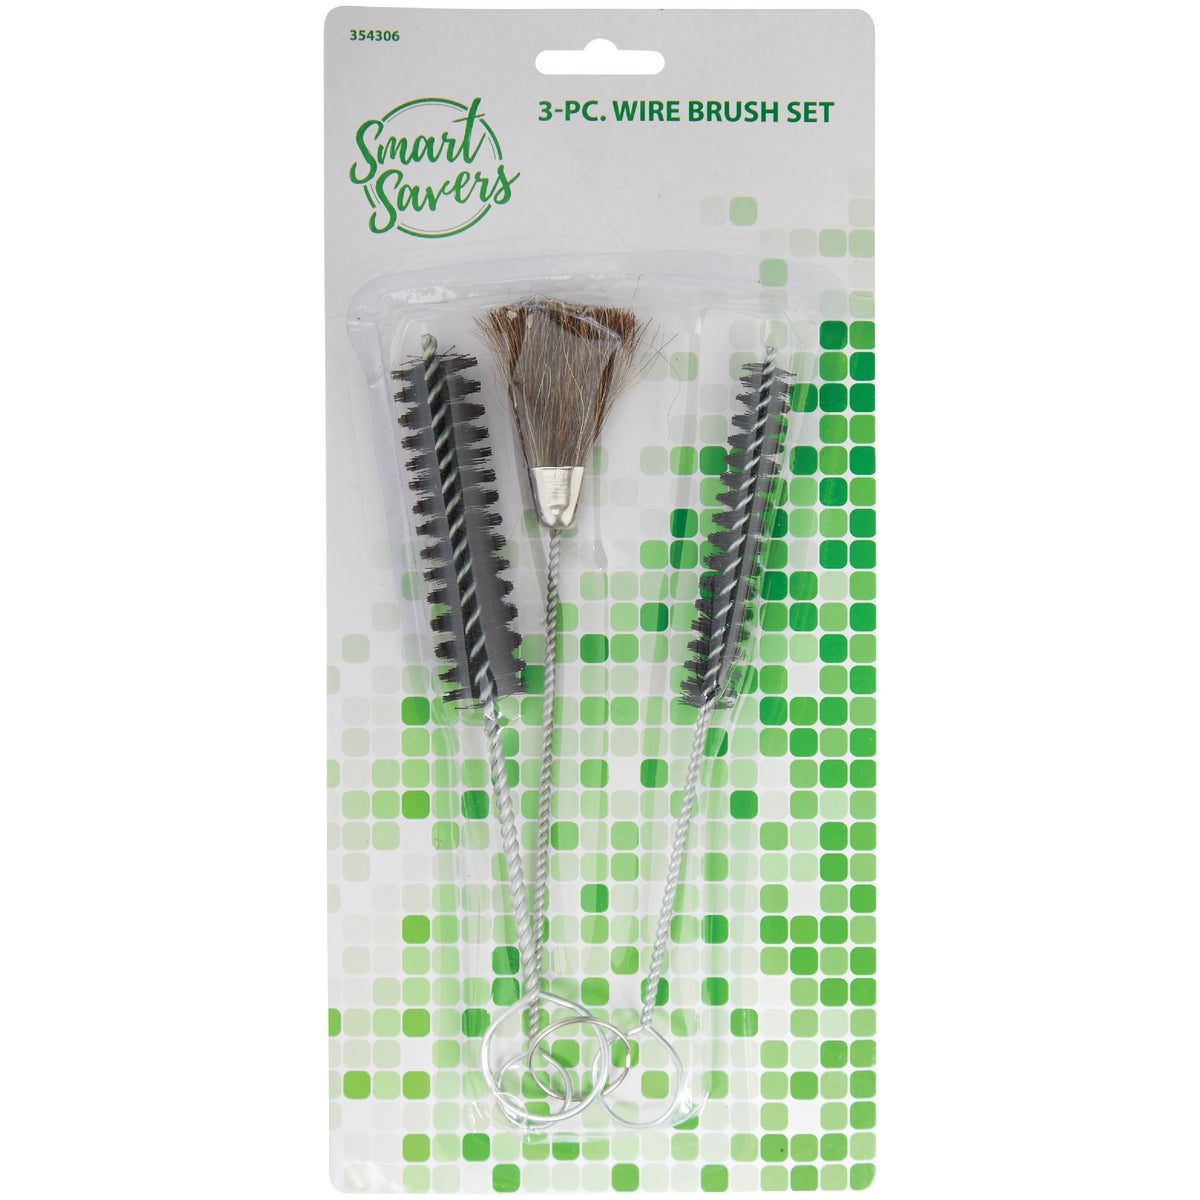 3PC WIRE BRUSH SET - BR090 by Do it Best